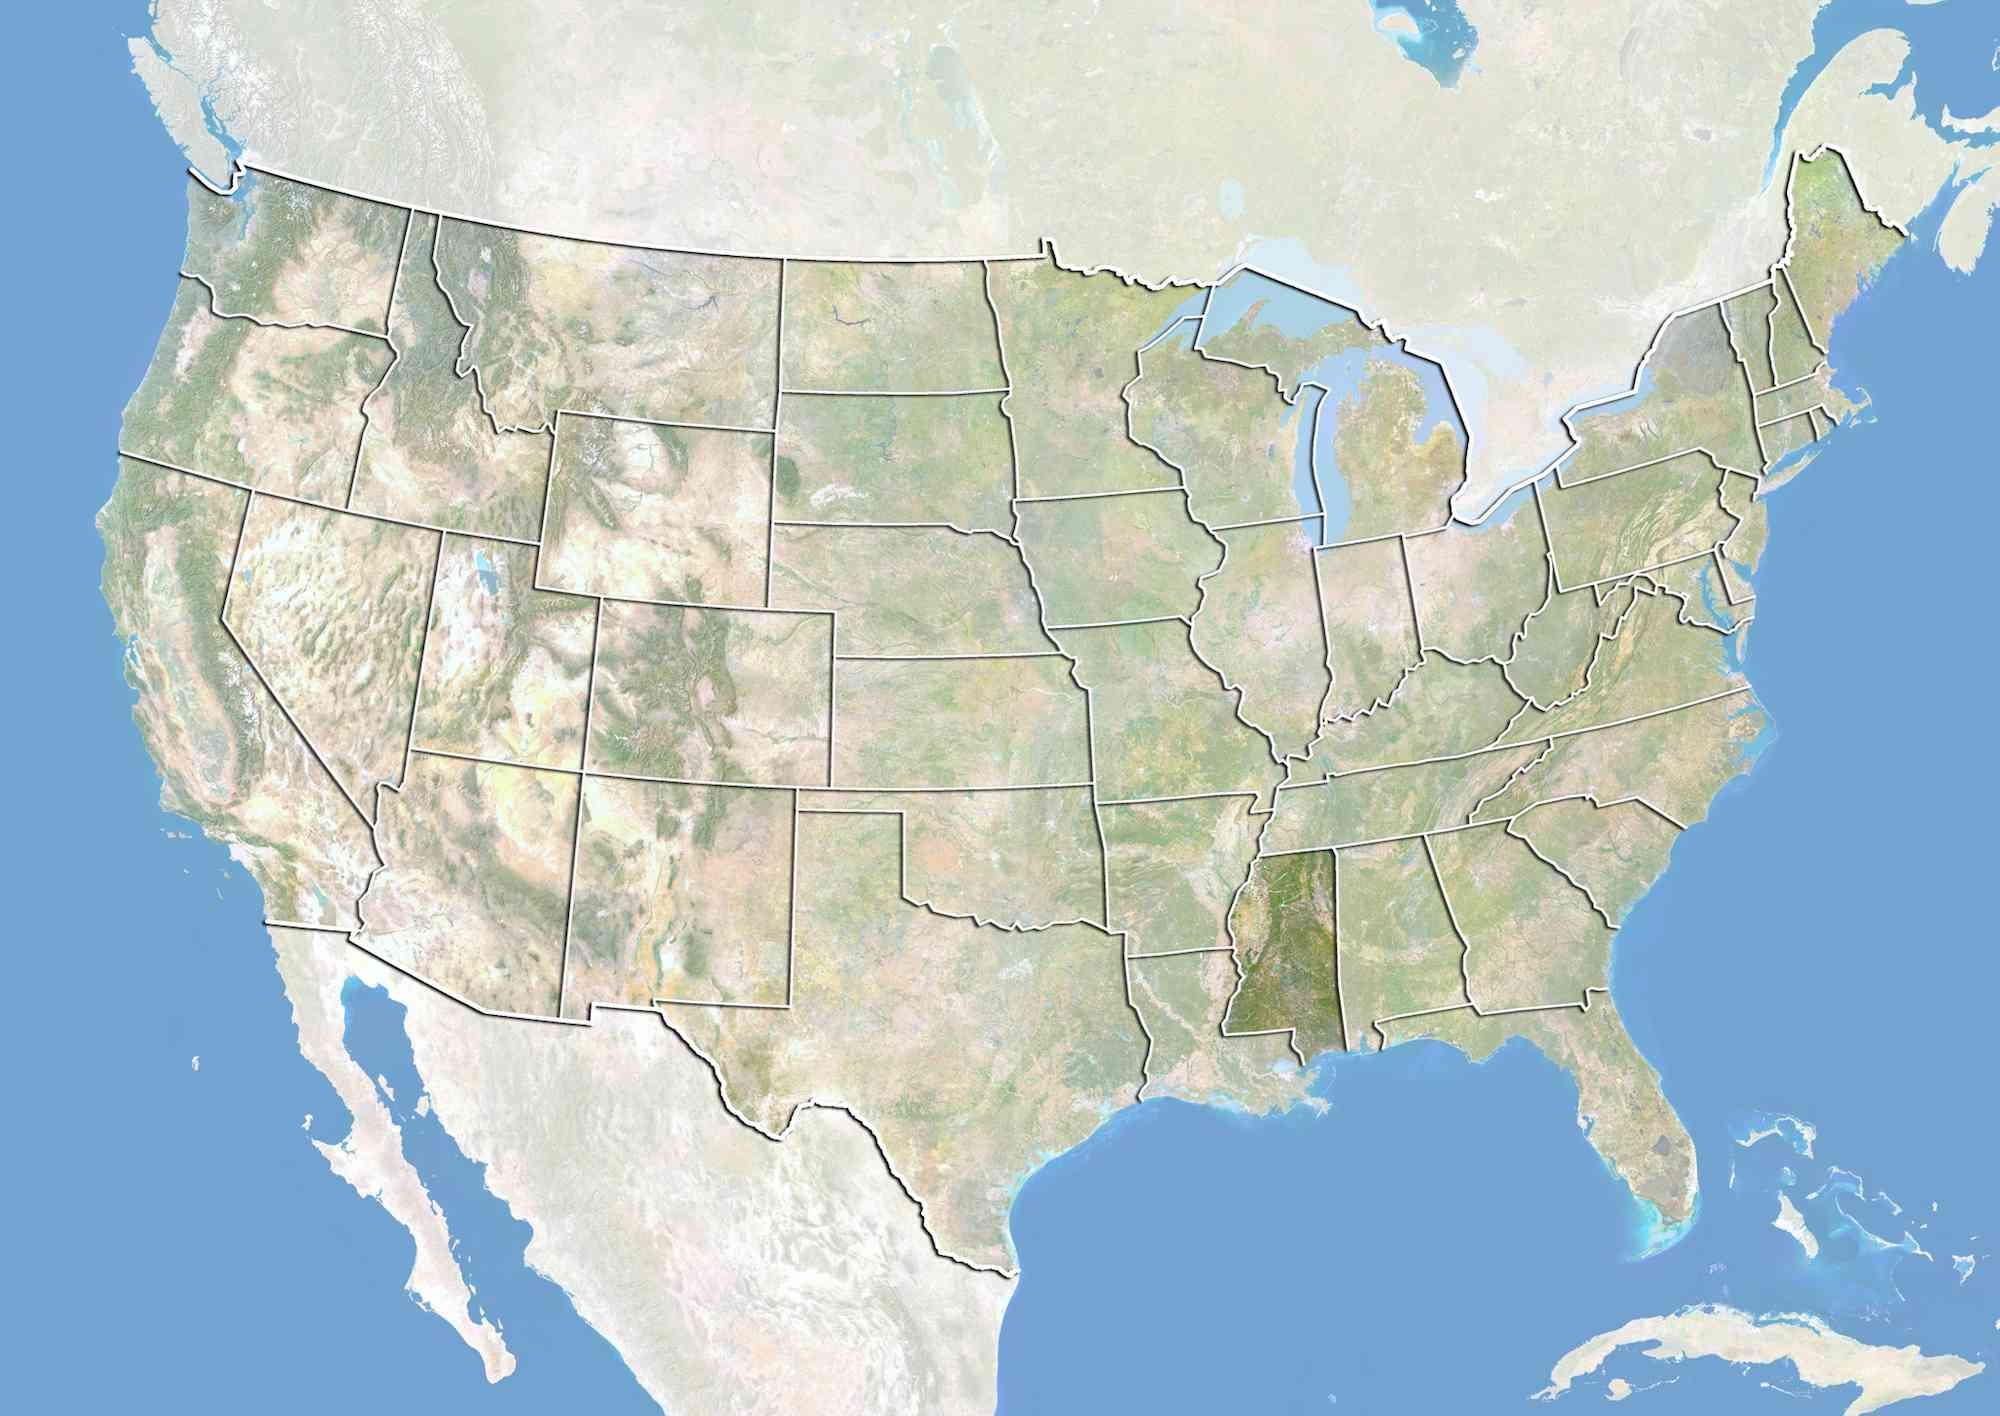 United States and the State of Mississippi, Satellite Image With Bump Effect